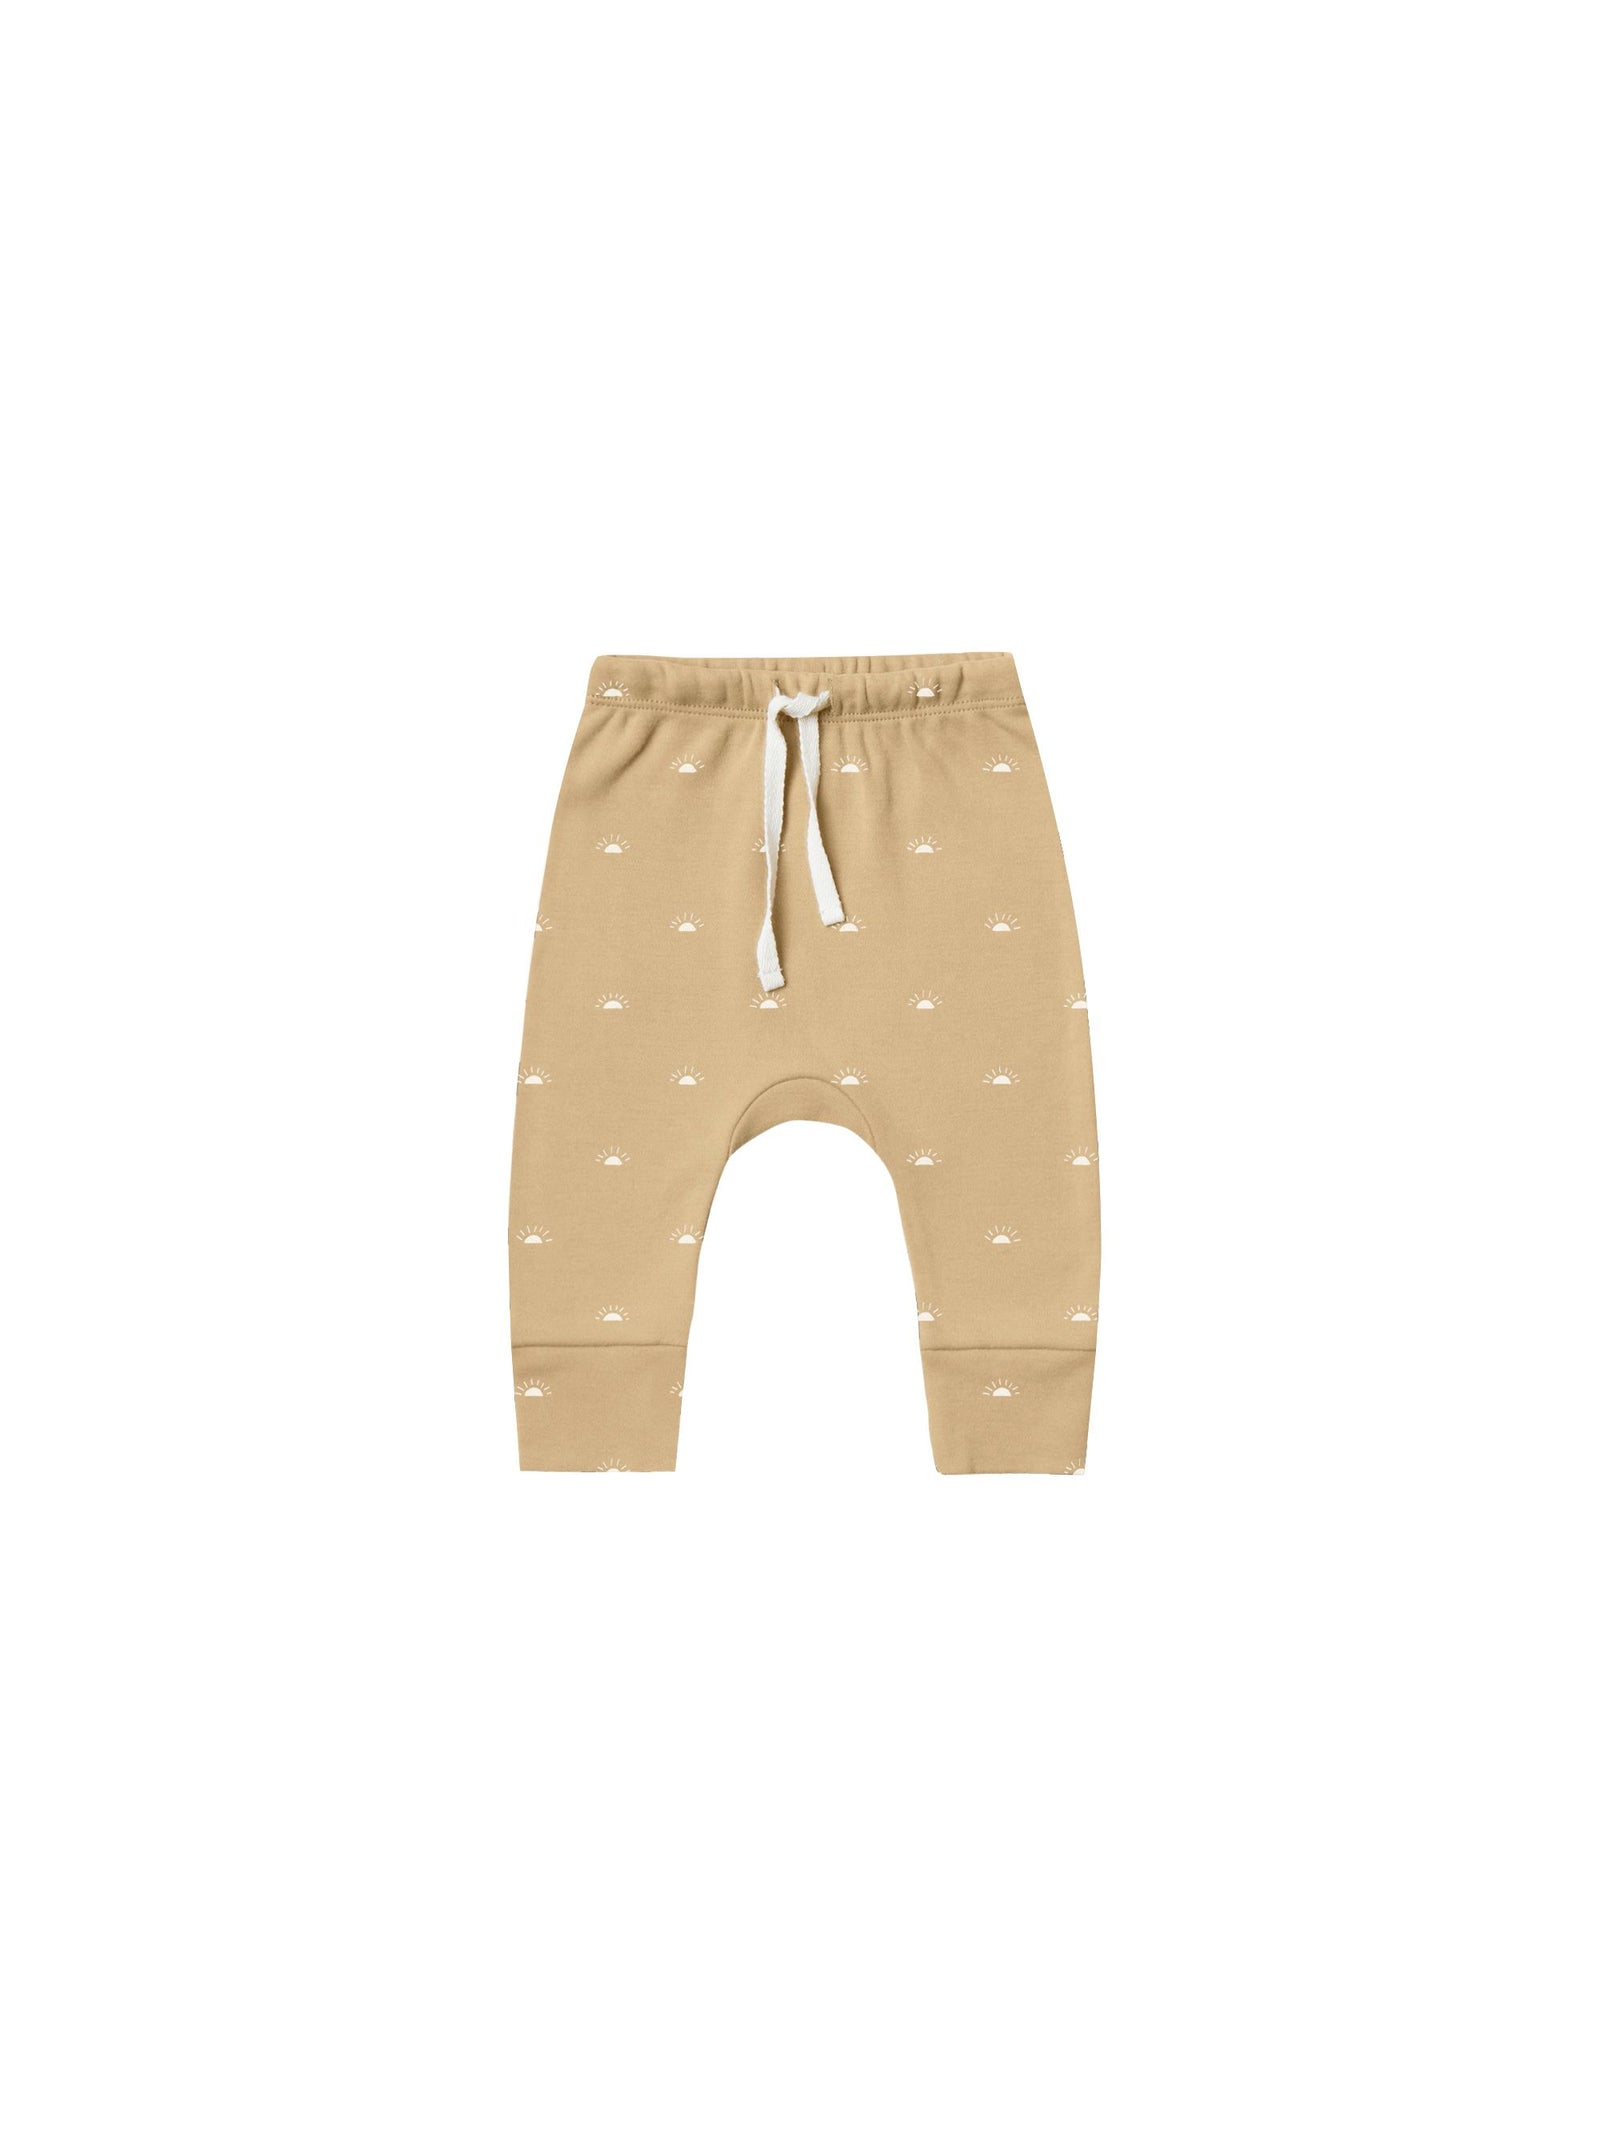 Organic Brushed Jersey Drawstring Pant - Honey